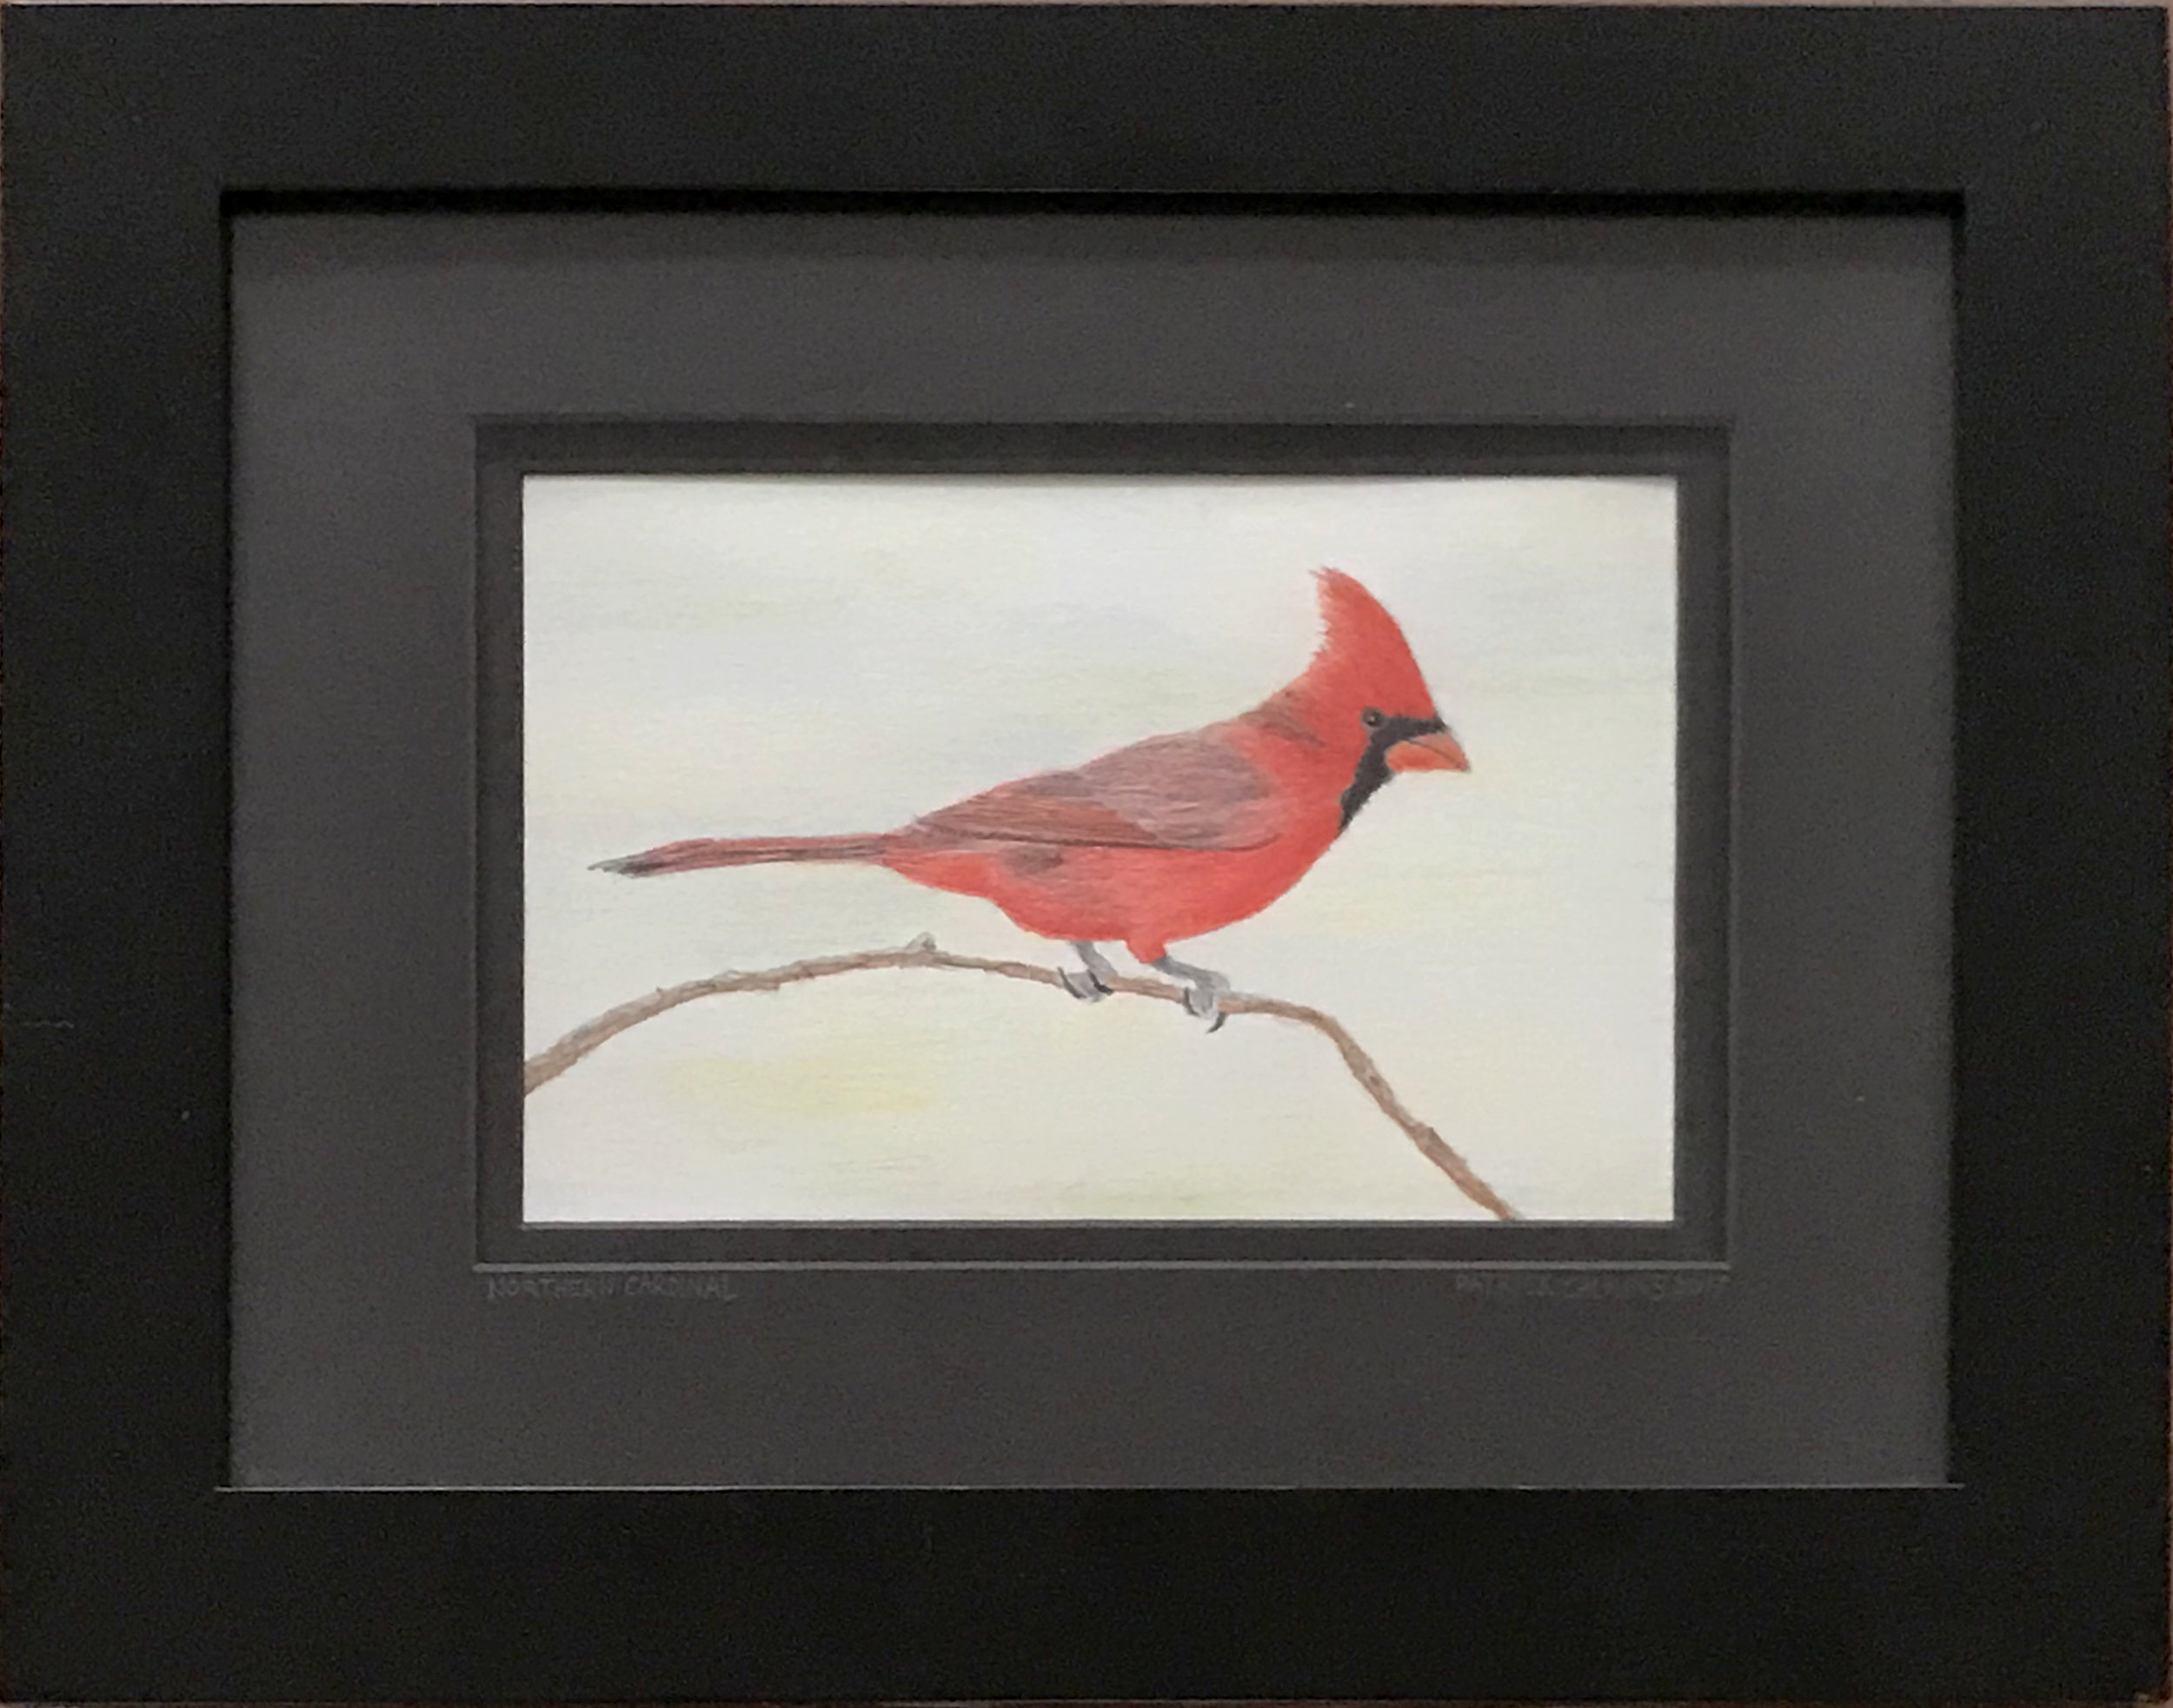 - Patrick CalkinsNorthern Cardinal2016Colored pencil on paper5 x 7 inches